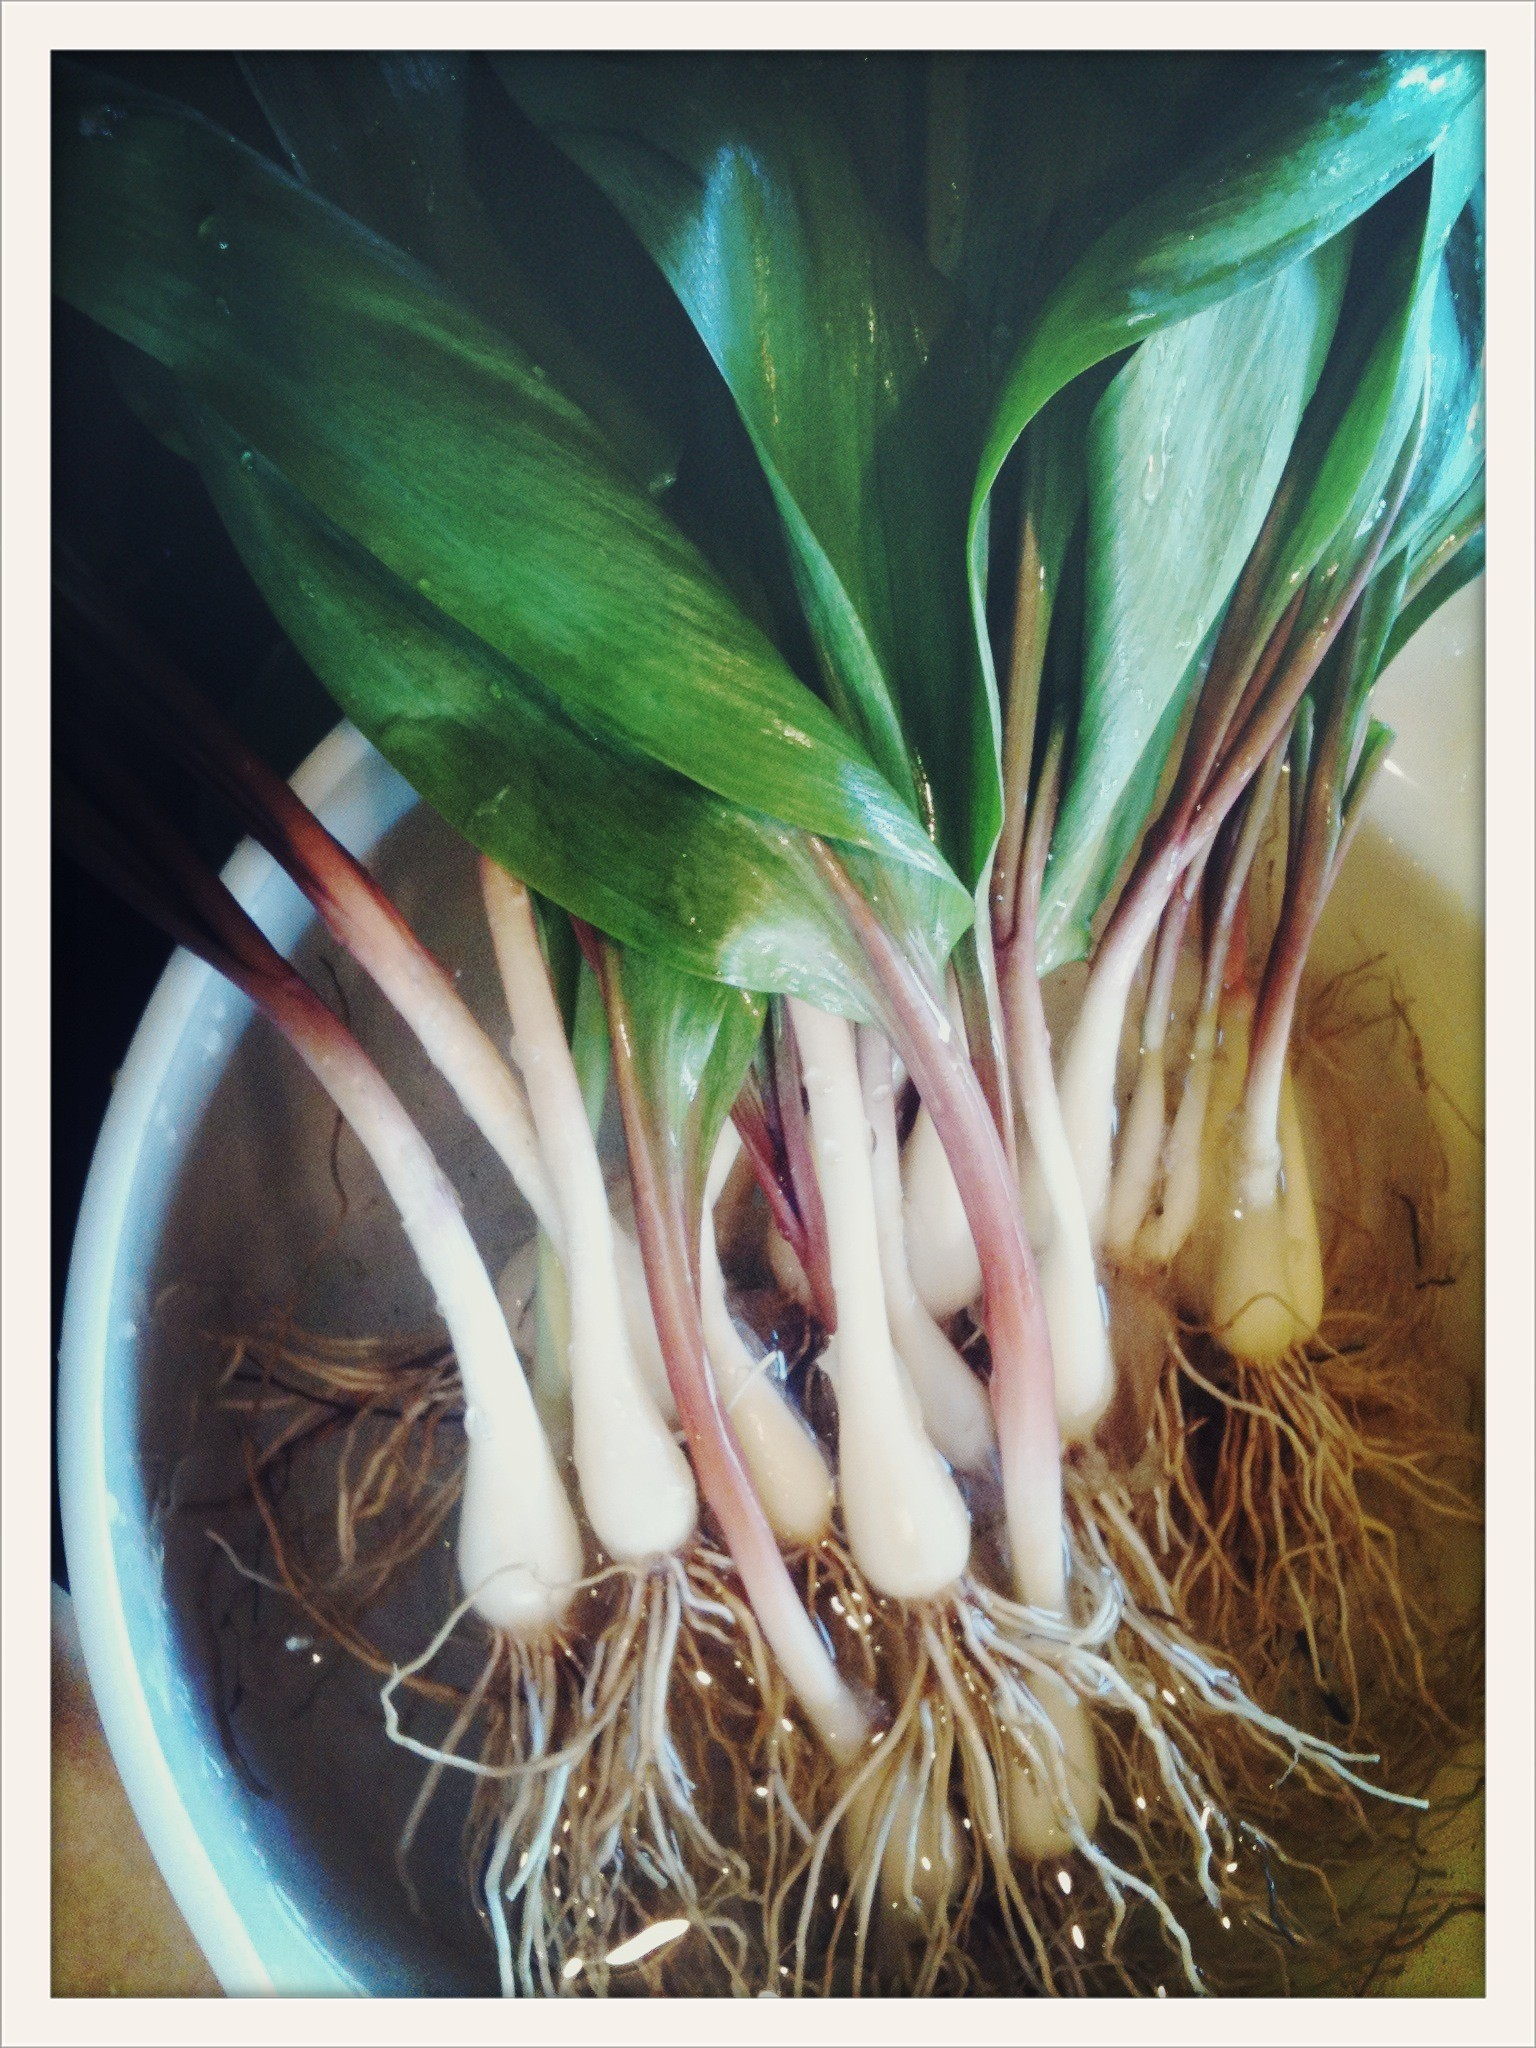 what are ramps anyway and why do food lovers freak out over them